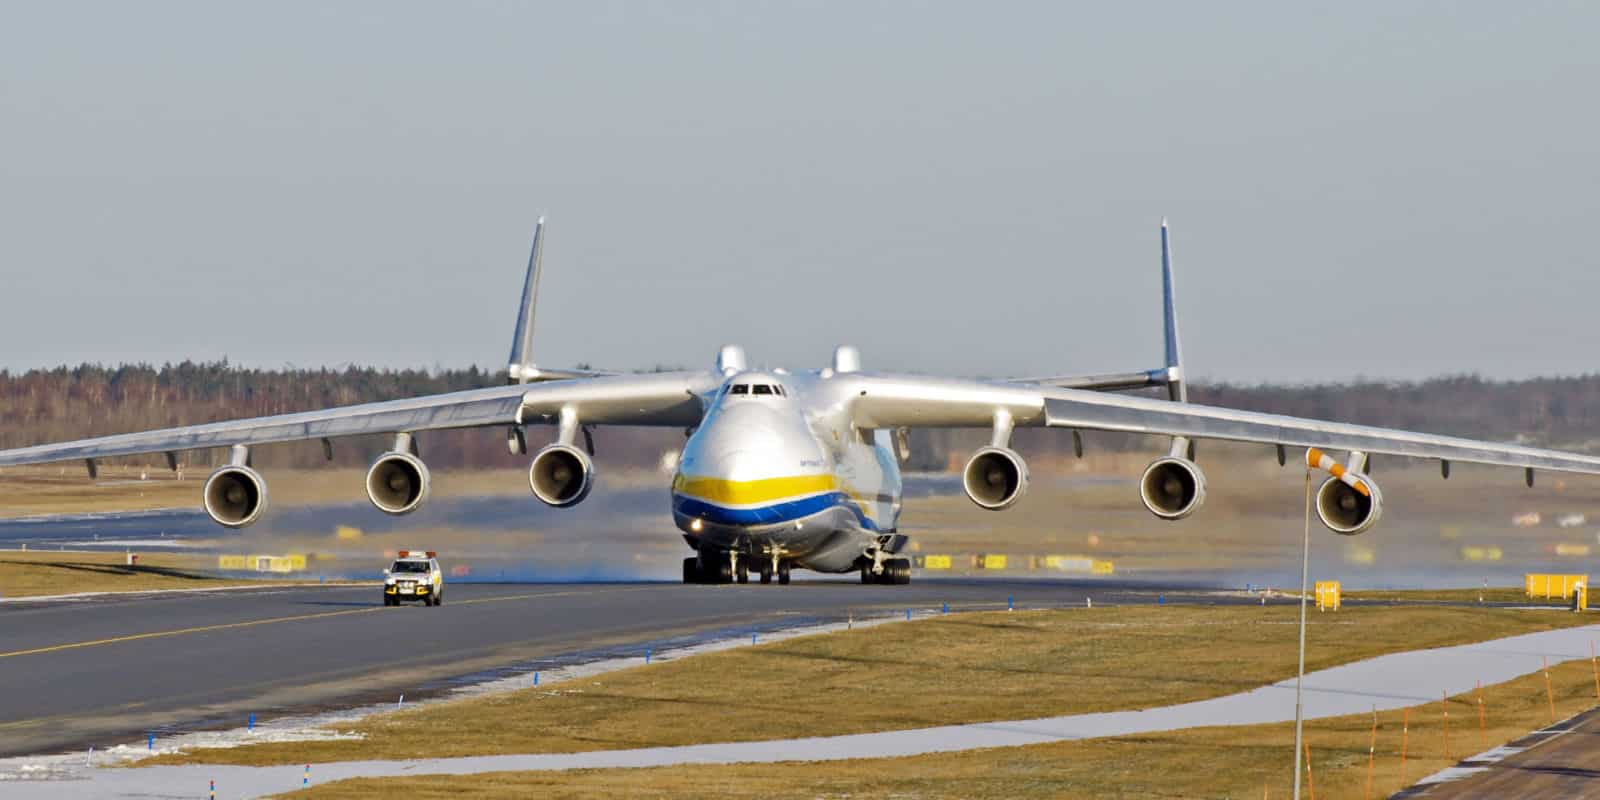 Antonov AN-225 Mriya - le plus grand avion cargo du monde